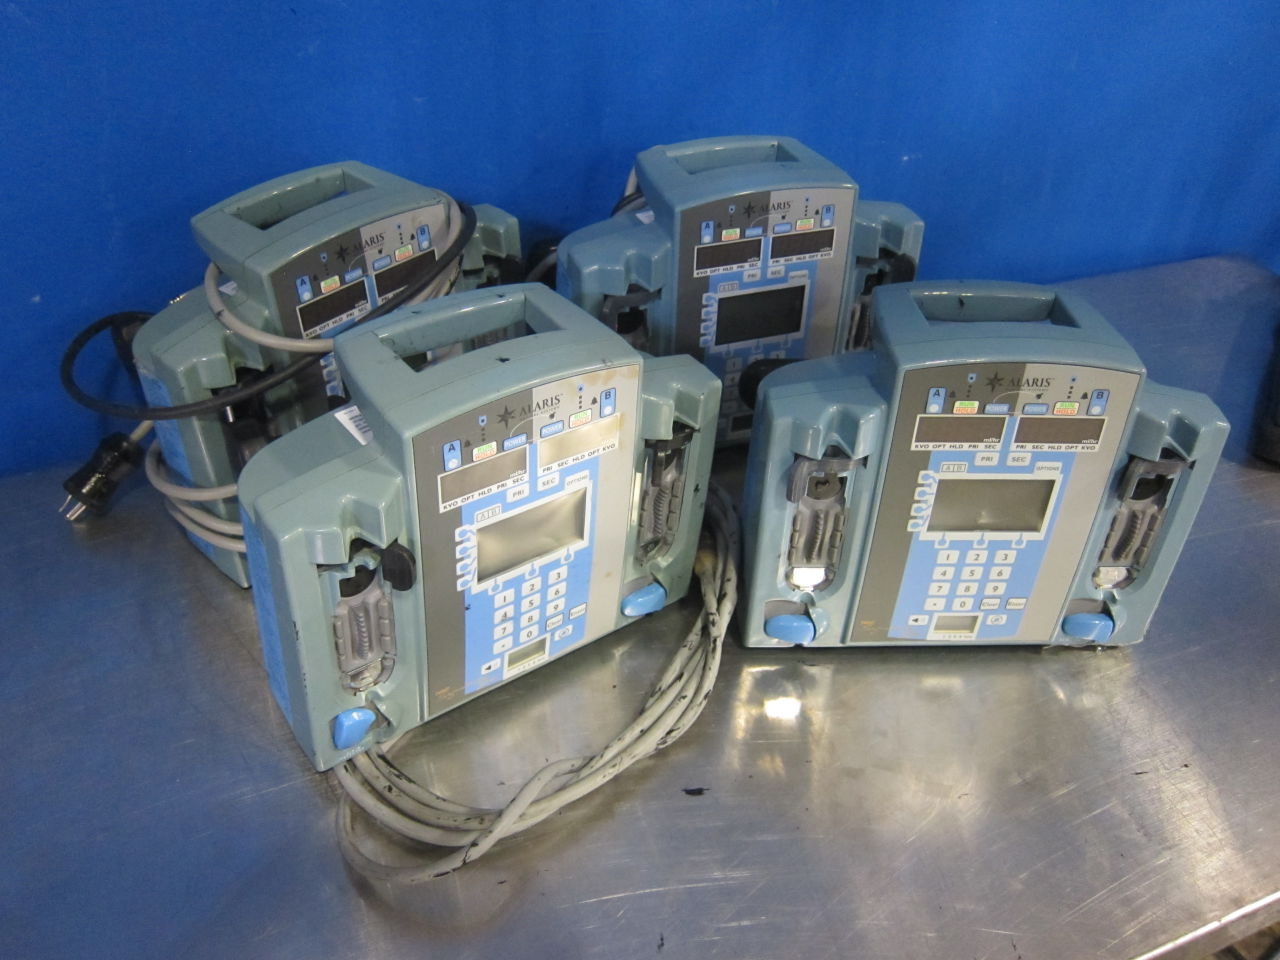 ALARIS 7230  - Lot of 4 Pump IV Infusion